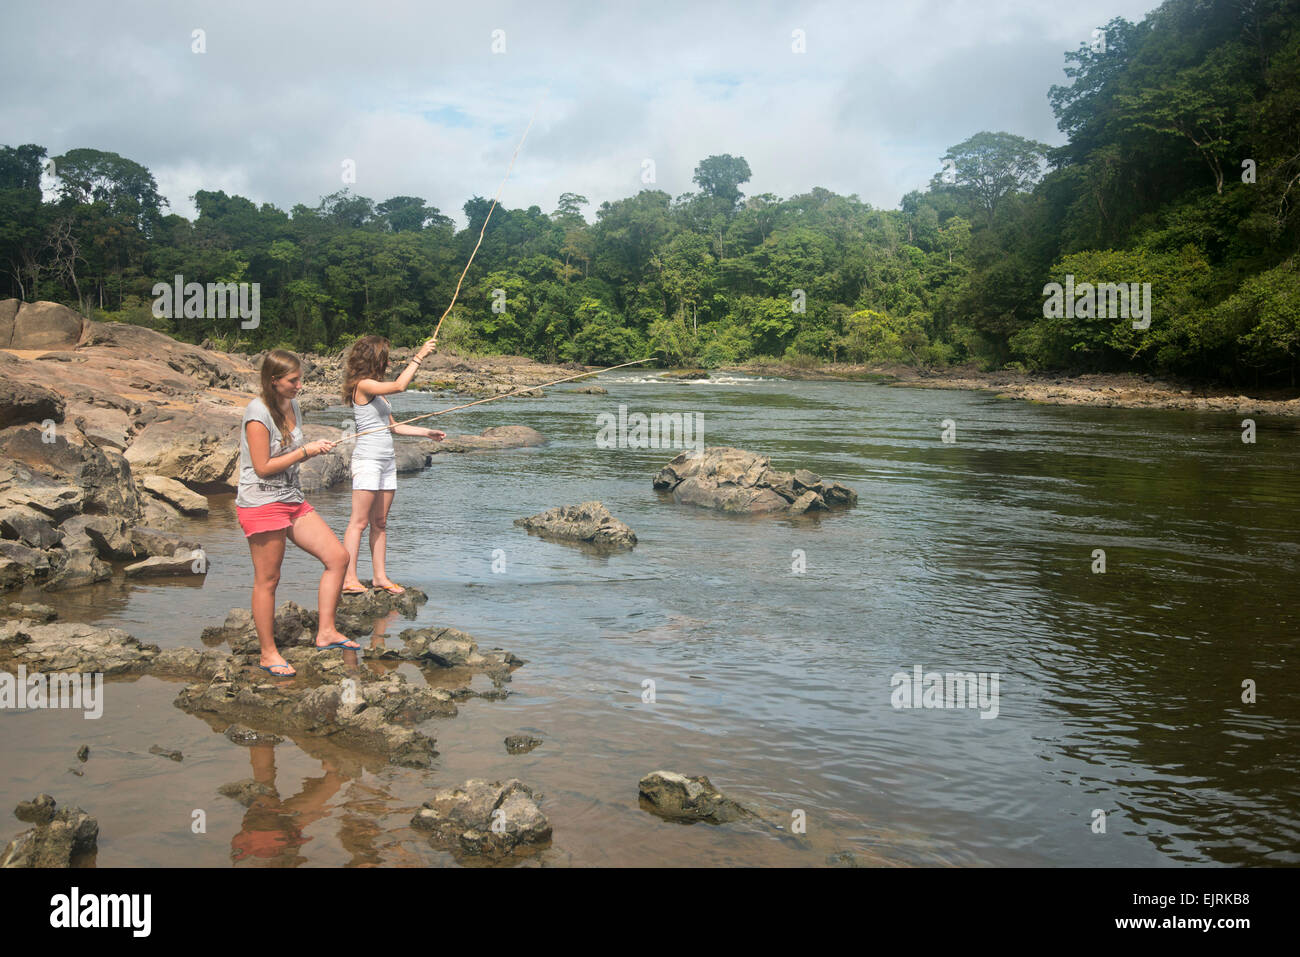 Fishing in the upper Coppename River, Central Suriname Nature Reserve, Suriname - Stock Image